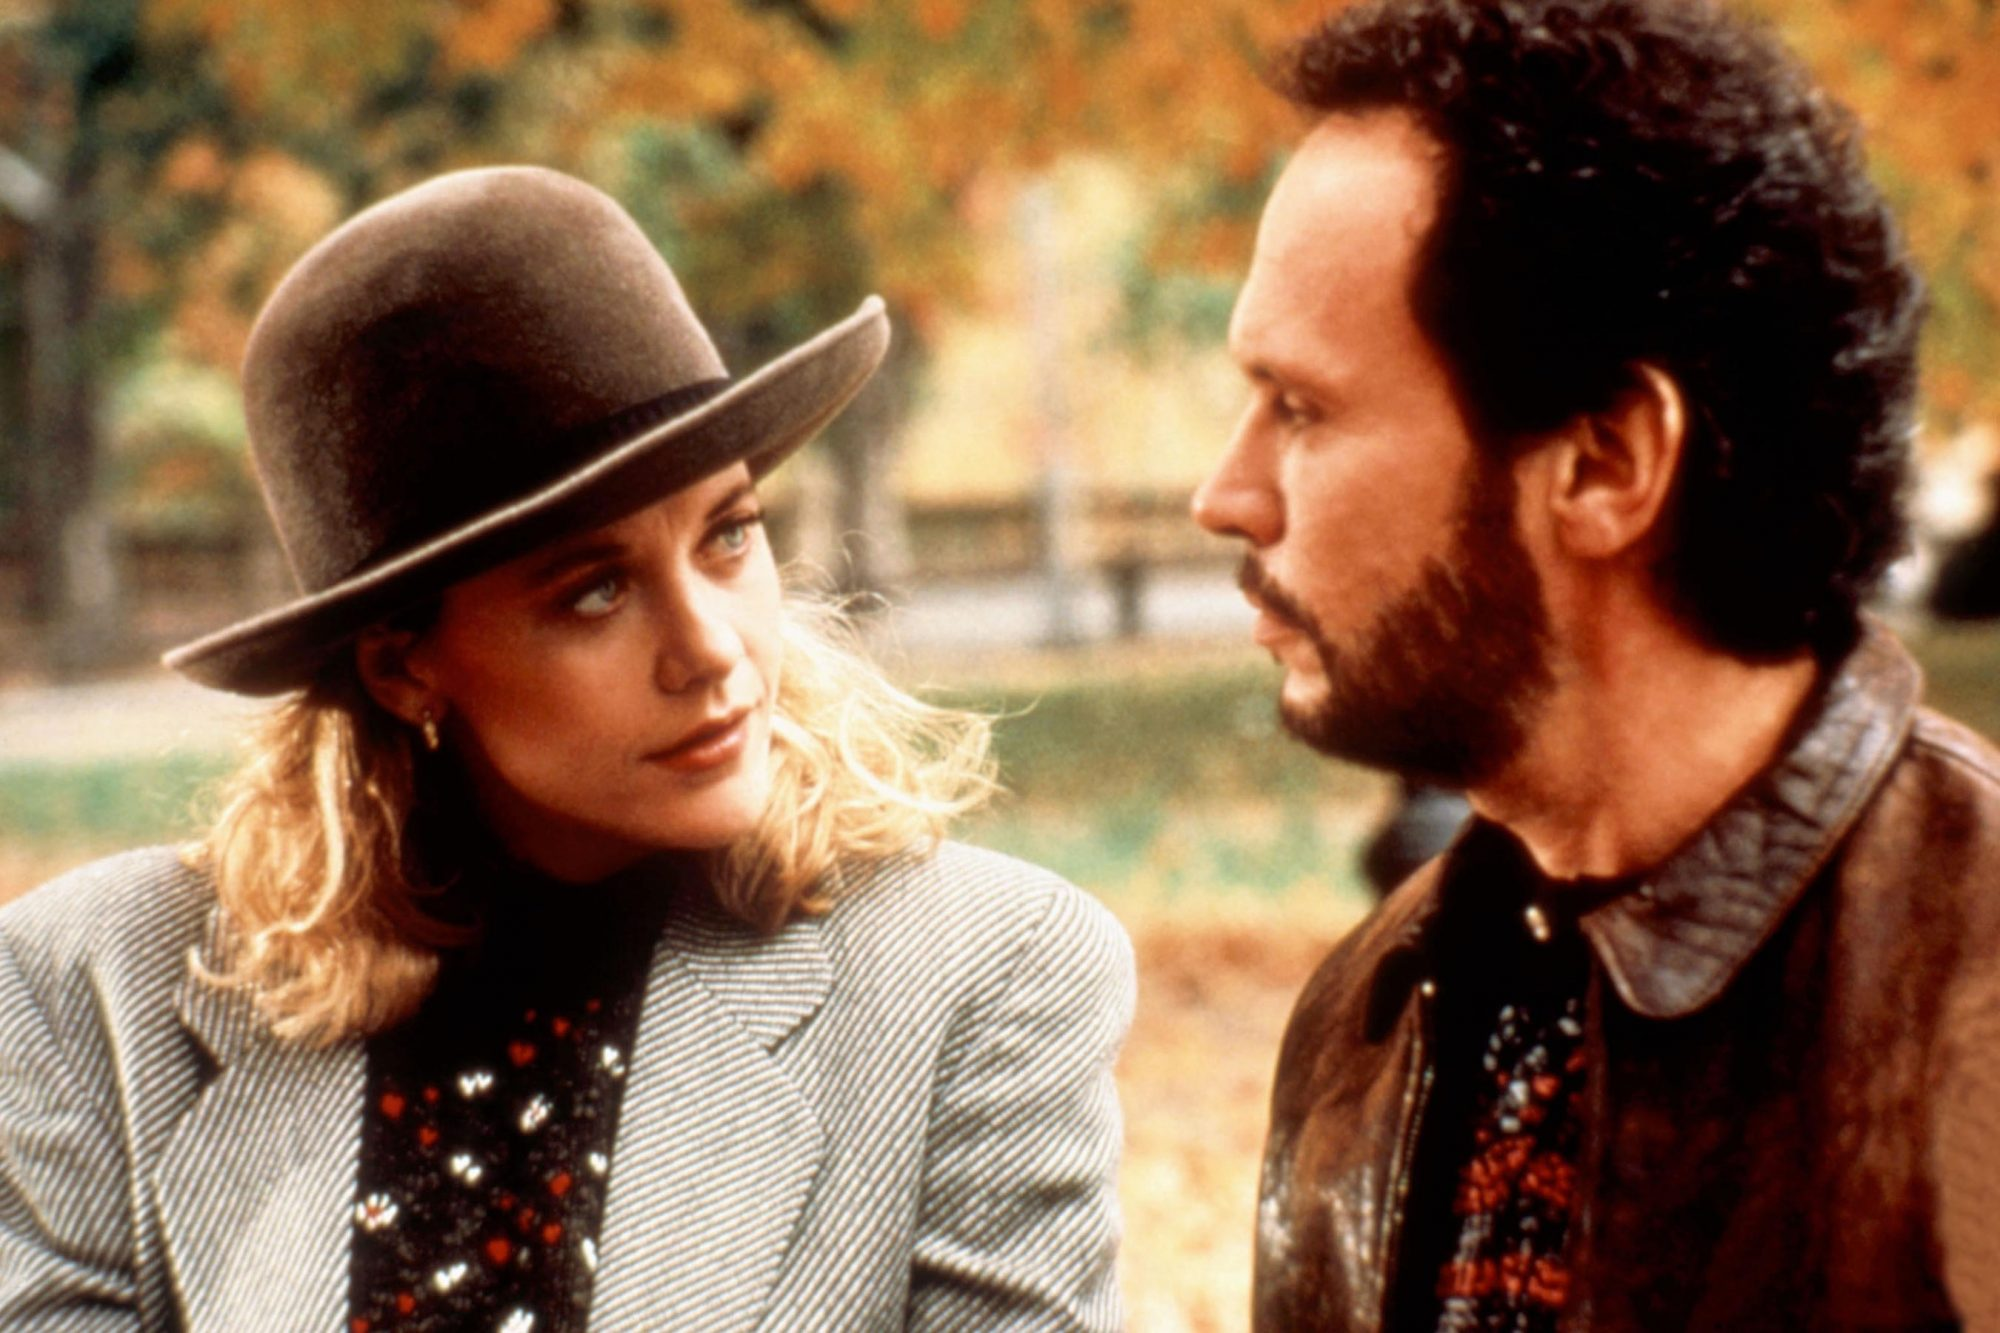 WHEN HARRY MET SALLY, Meg Ryan, Billy Crystal, 1989. (c) Columbia Pictures/ Courtesy: Everett Collec